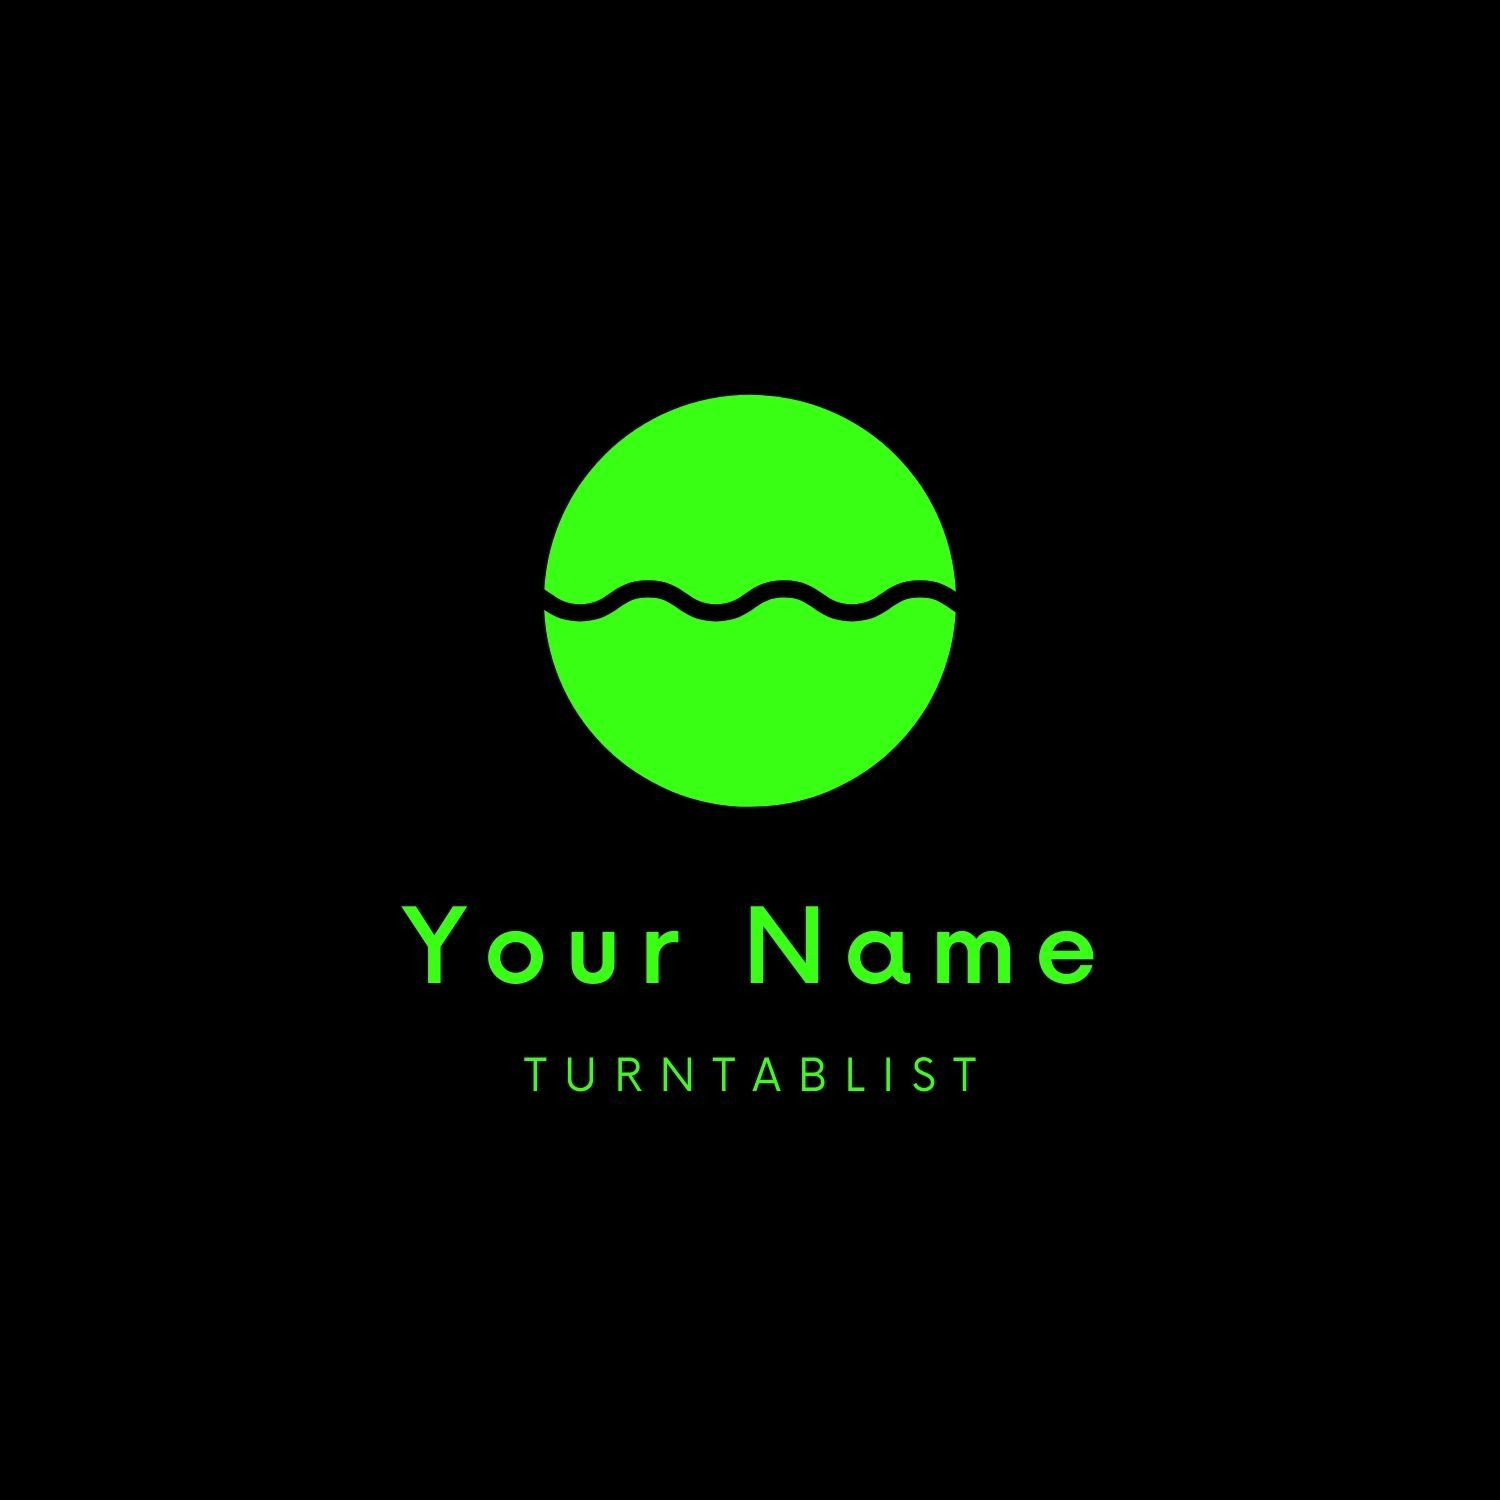 I Can Design Simple and Stylish Logos